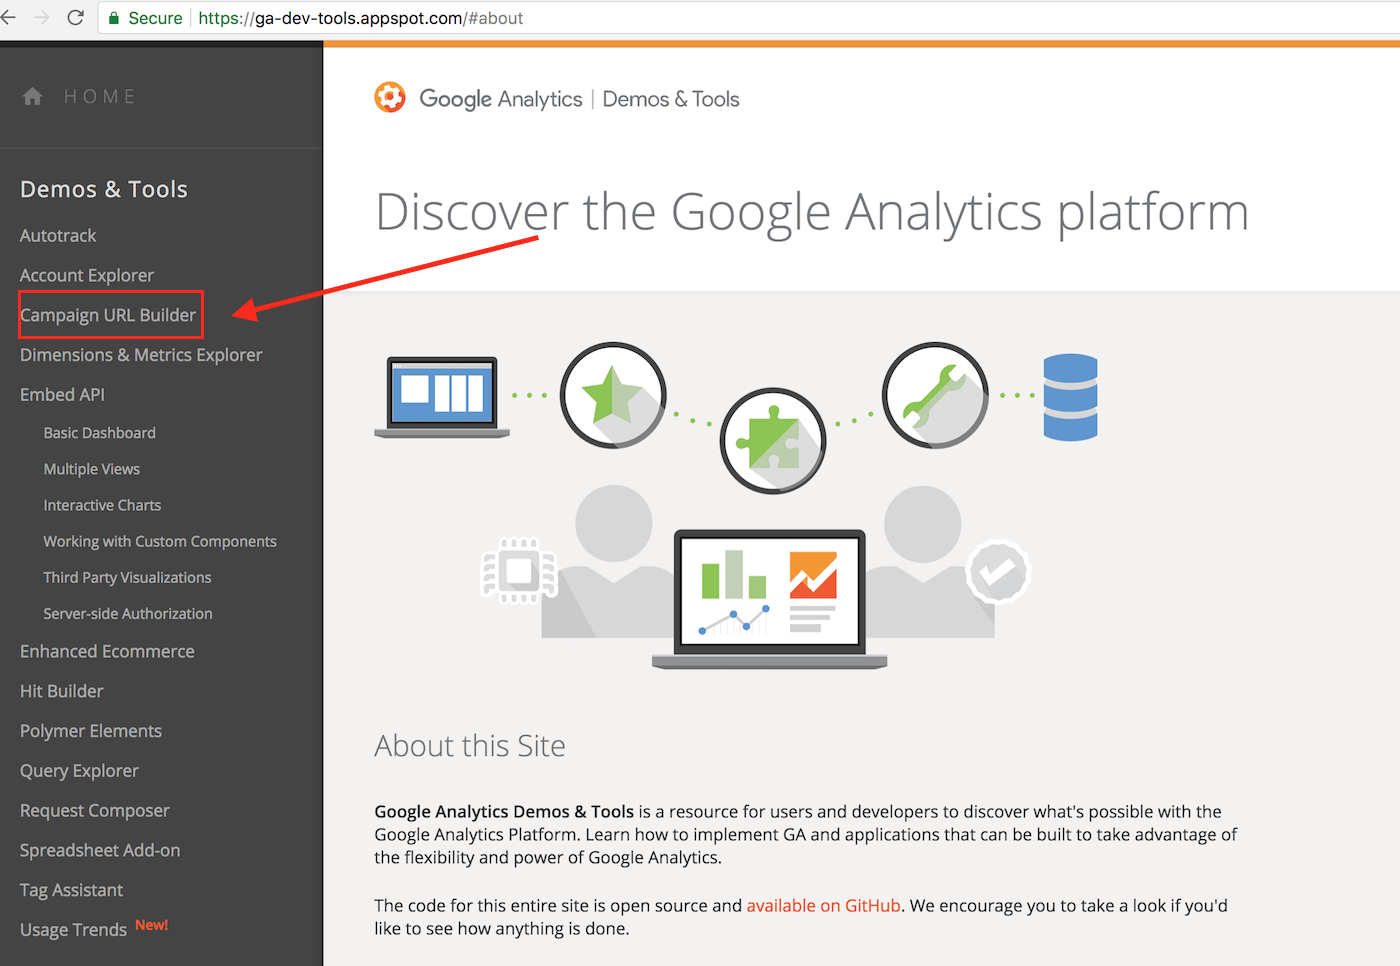 Where Is the URL Builder in Google Analytics?